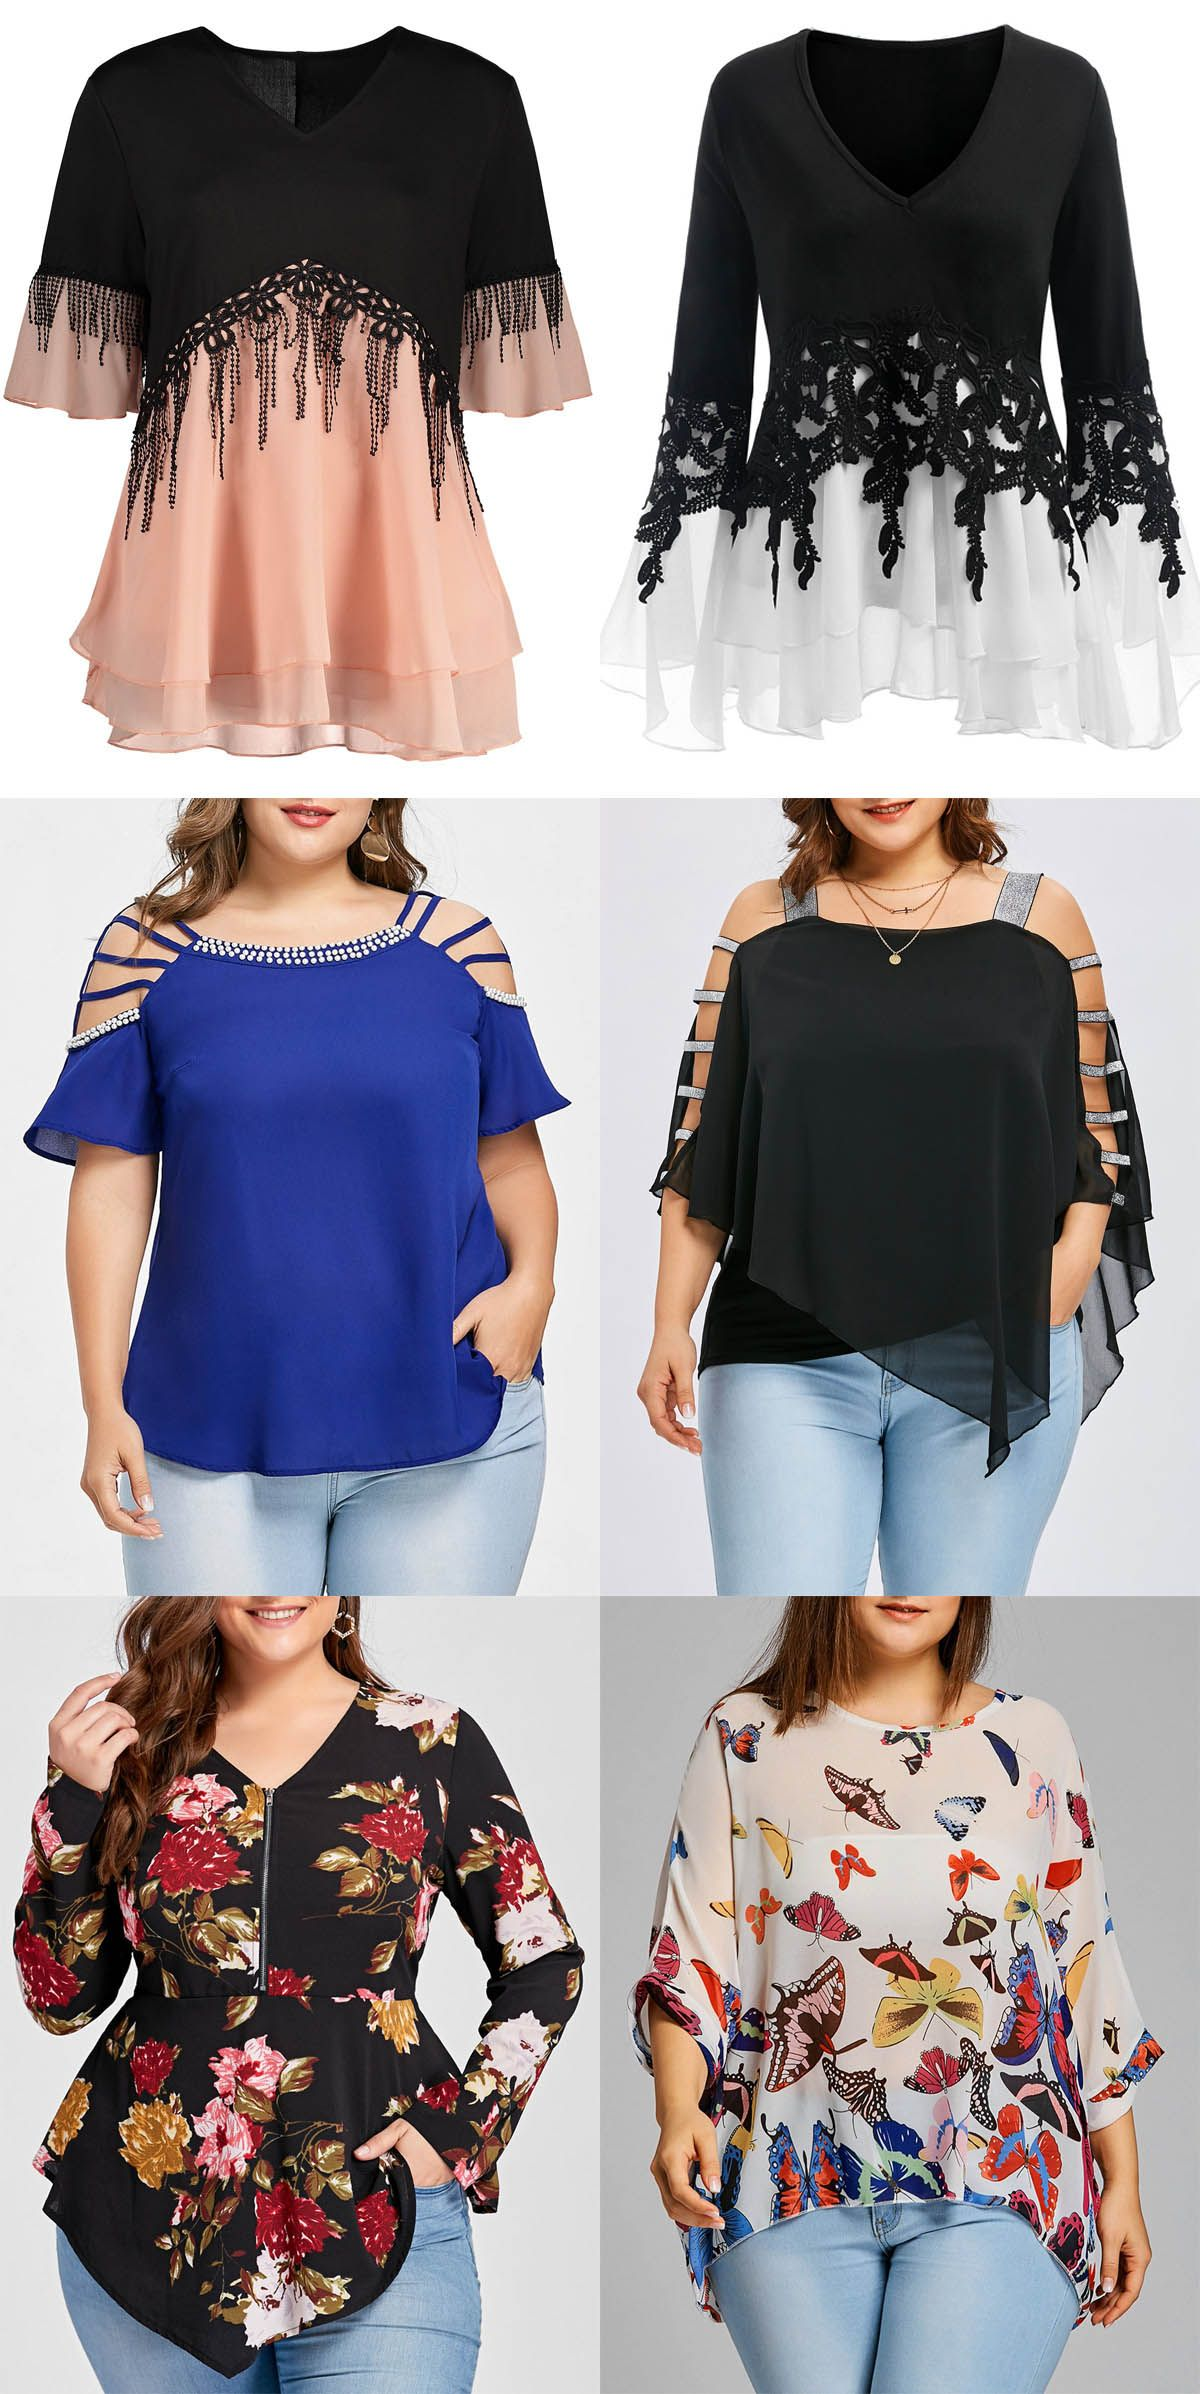 Rosegal Plus Size Blouses Spring Summer Outfits For Women Things